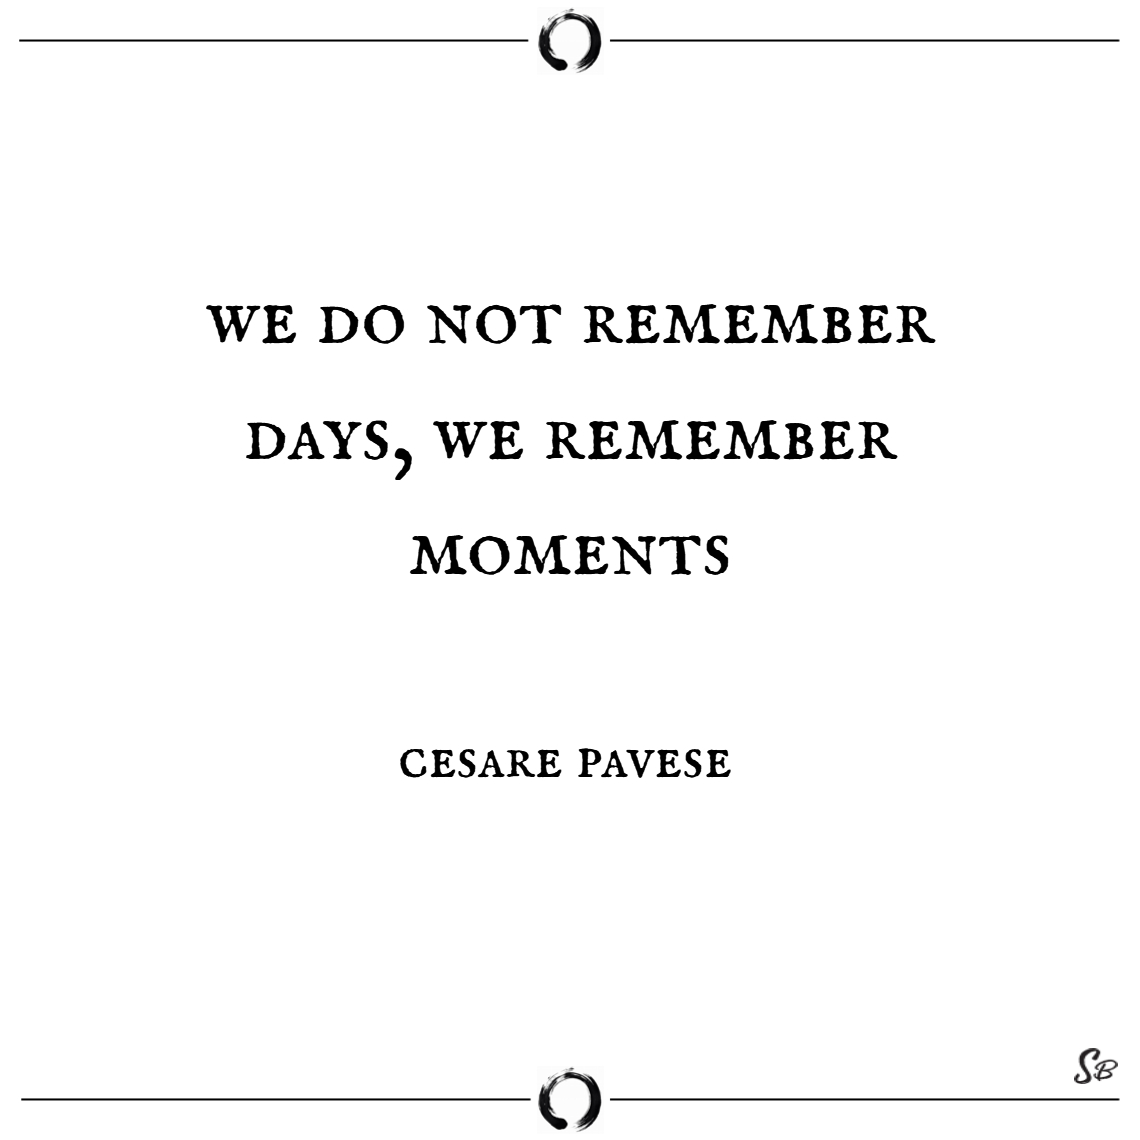 We do not remember days, we remember moments. – ce